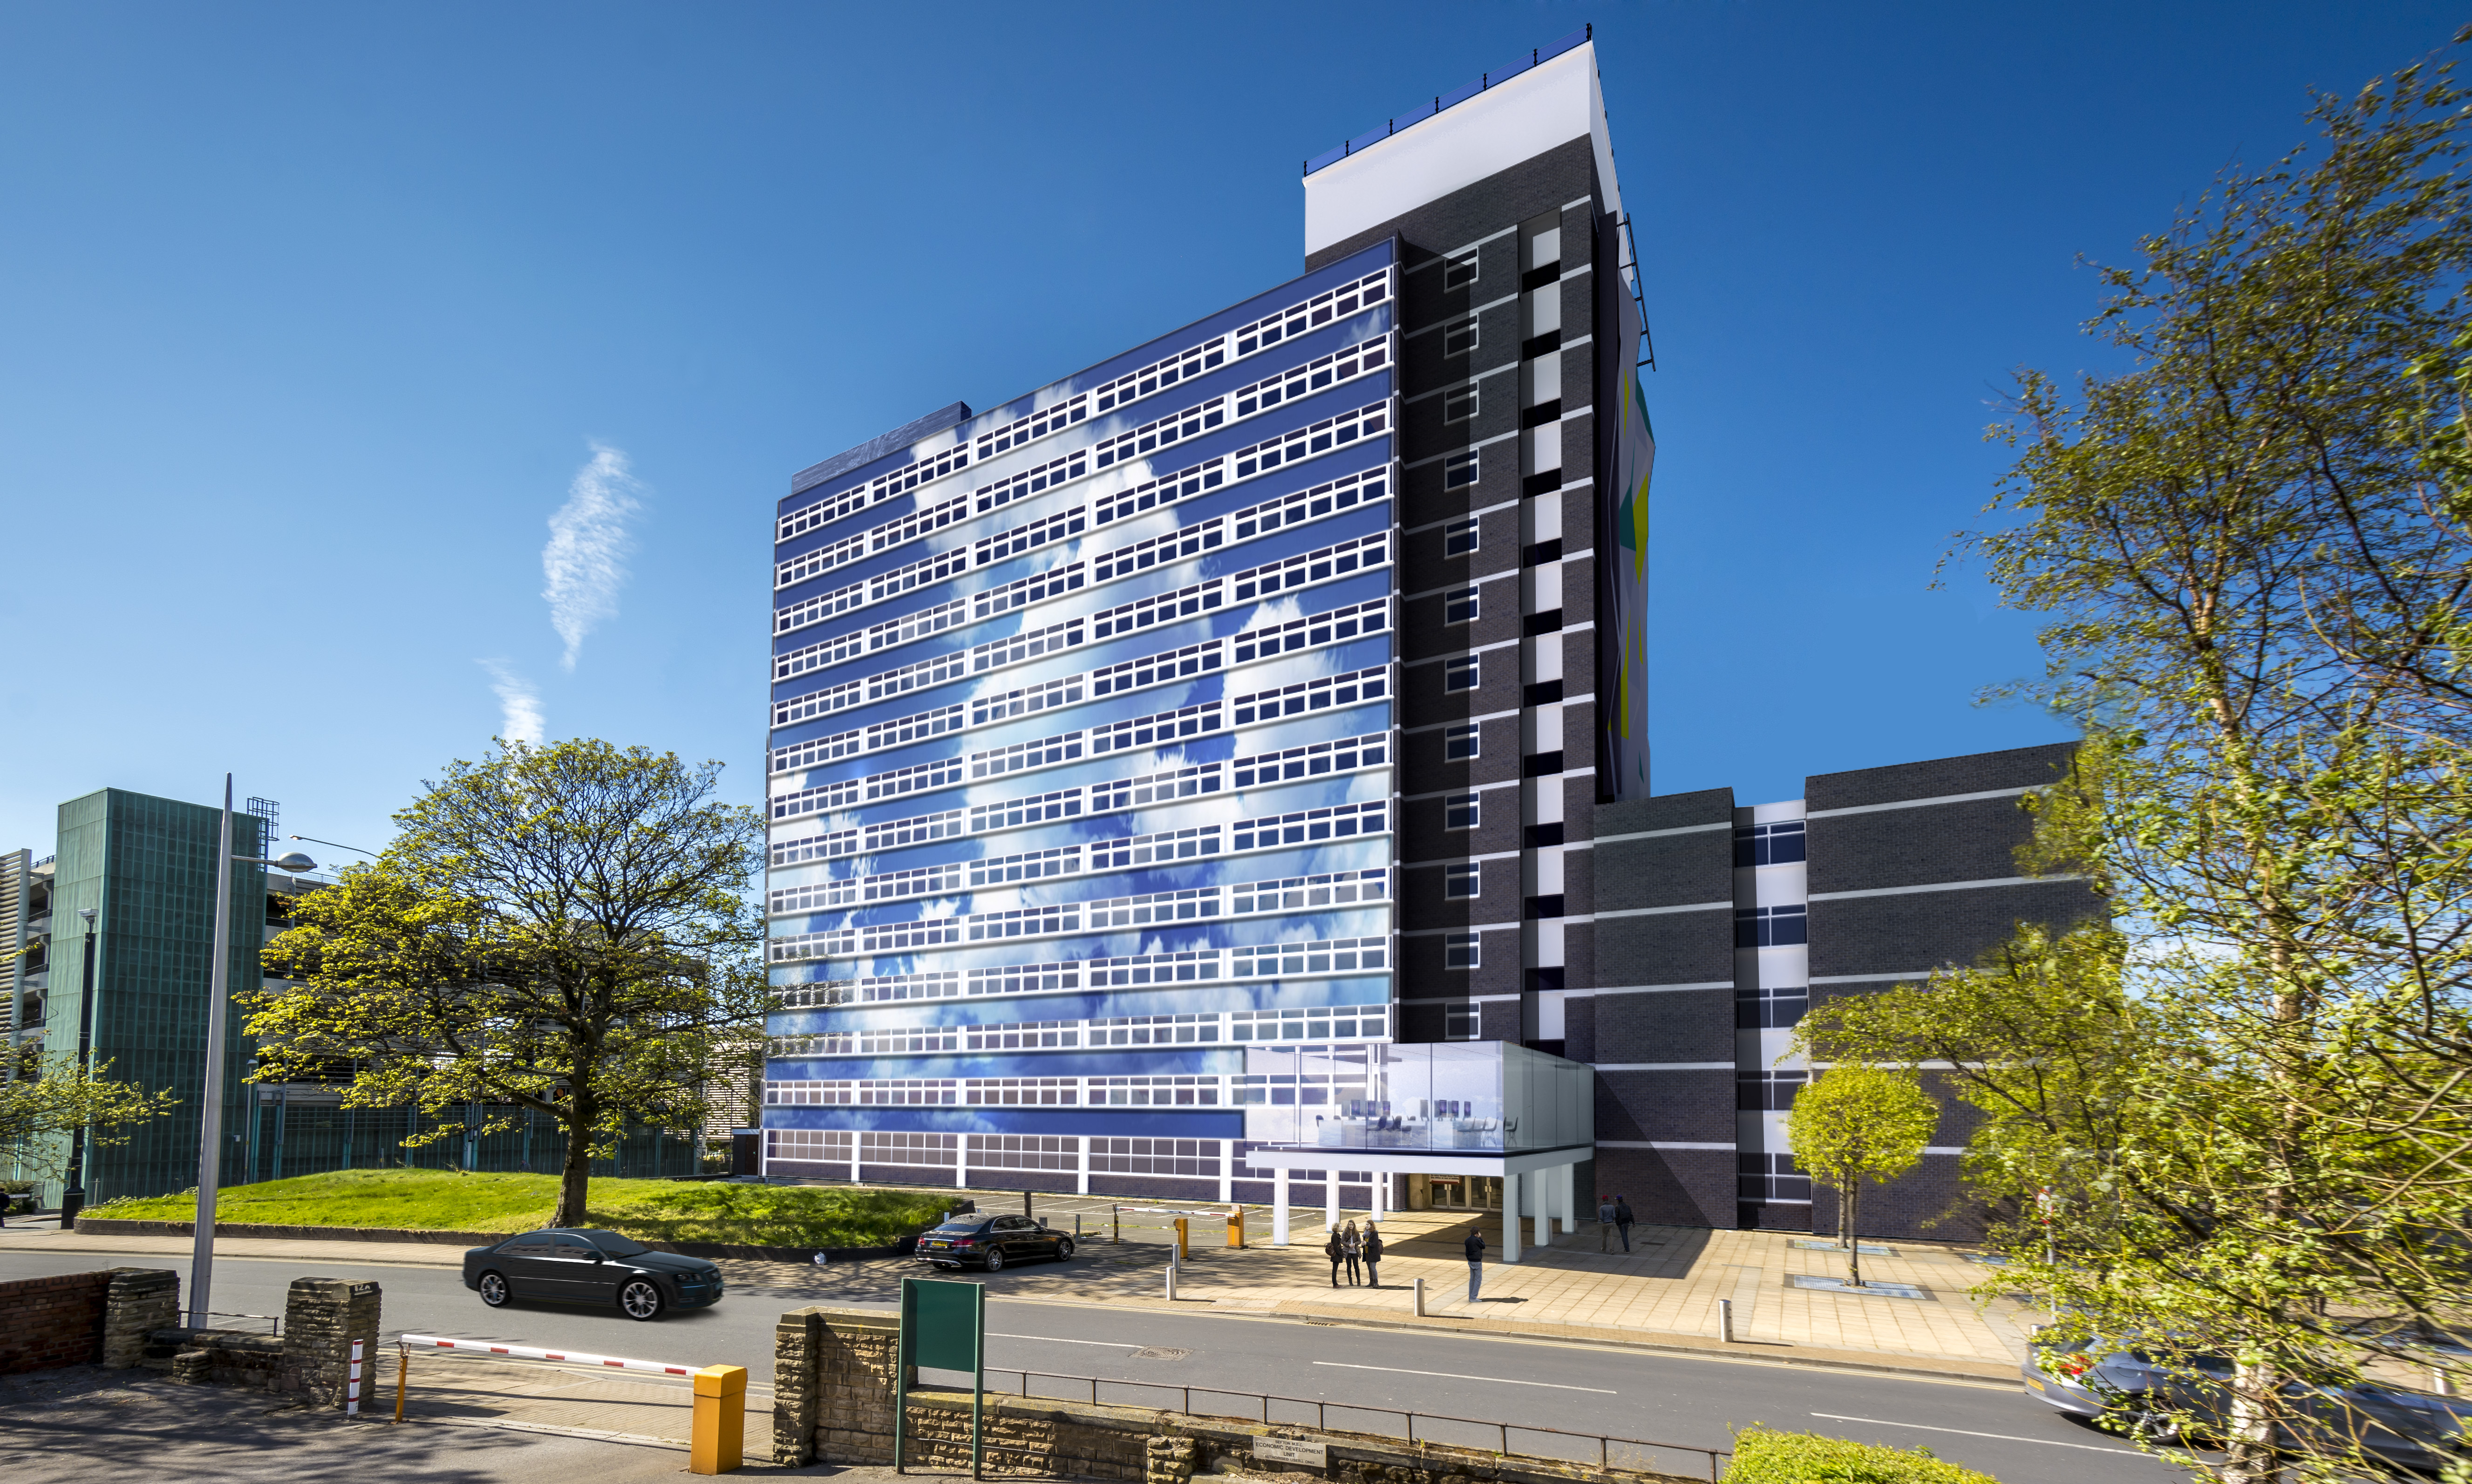 Student property investment enjoys second biggest year1 - Stonehard